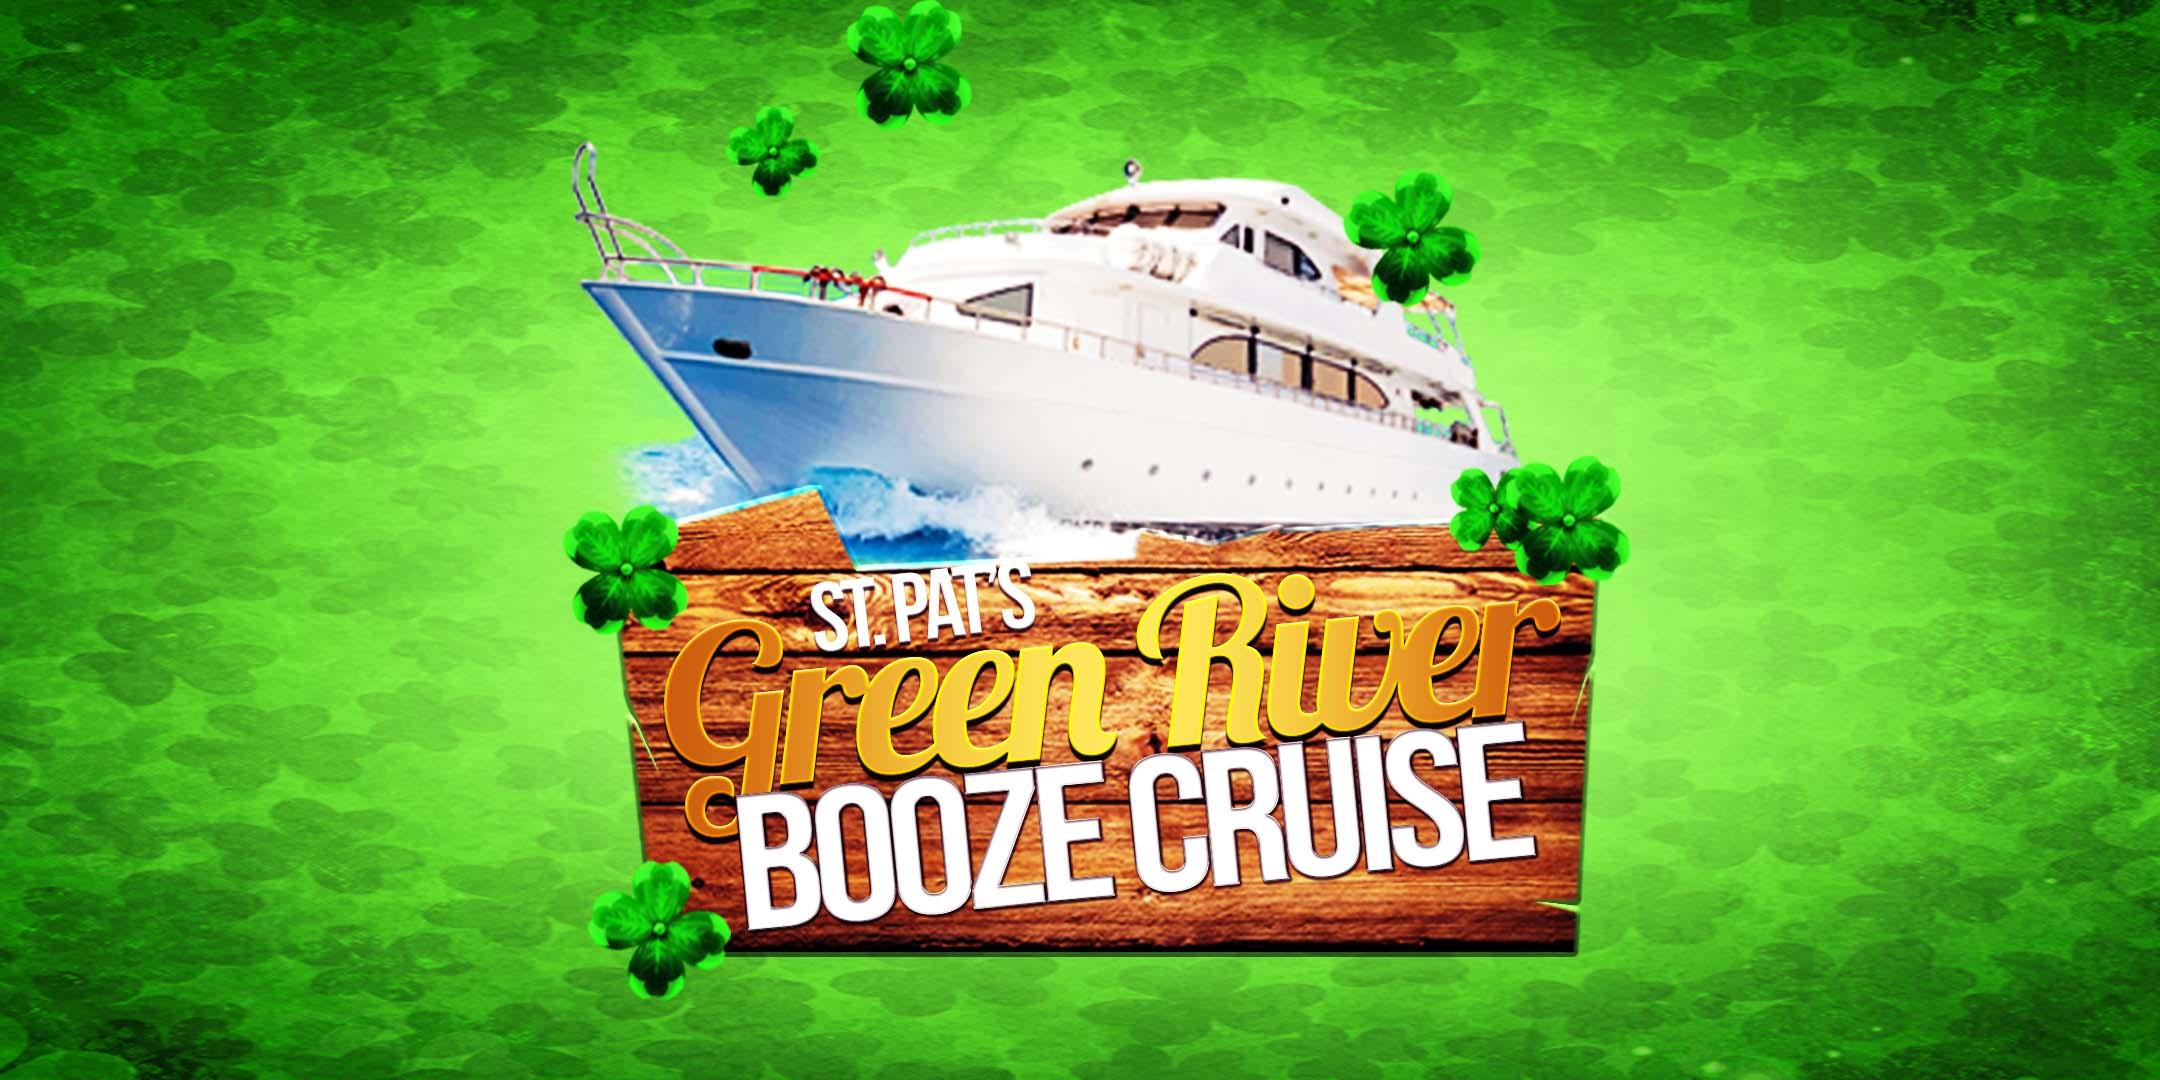 St. Pat's Green River Booze Cruise on March 17th! (4:30pm)